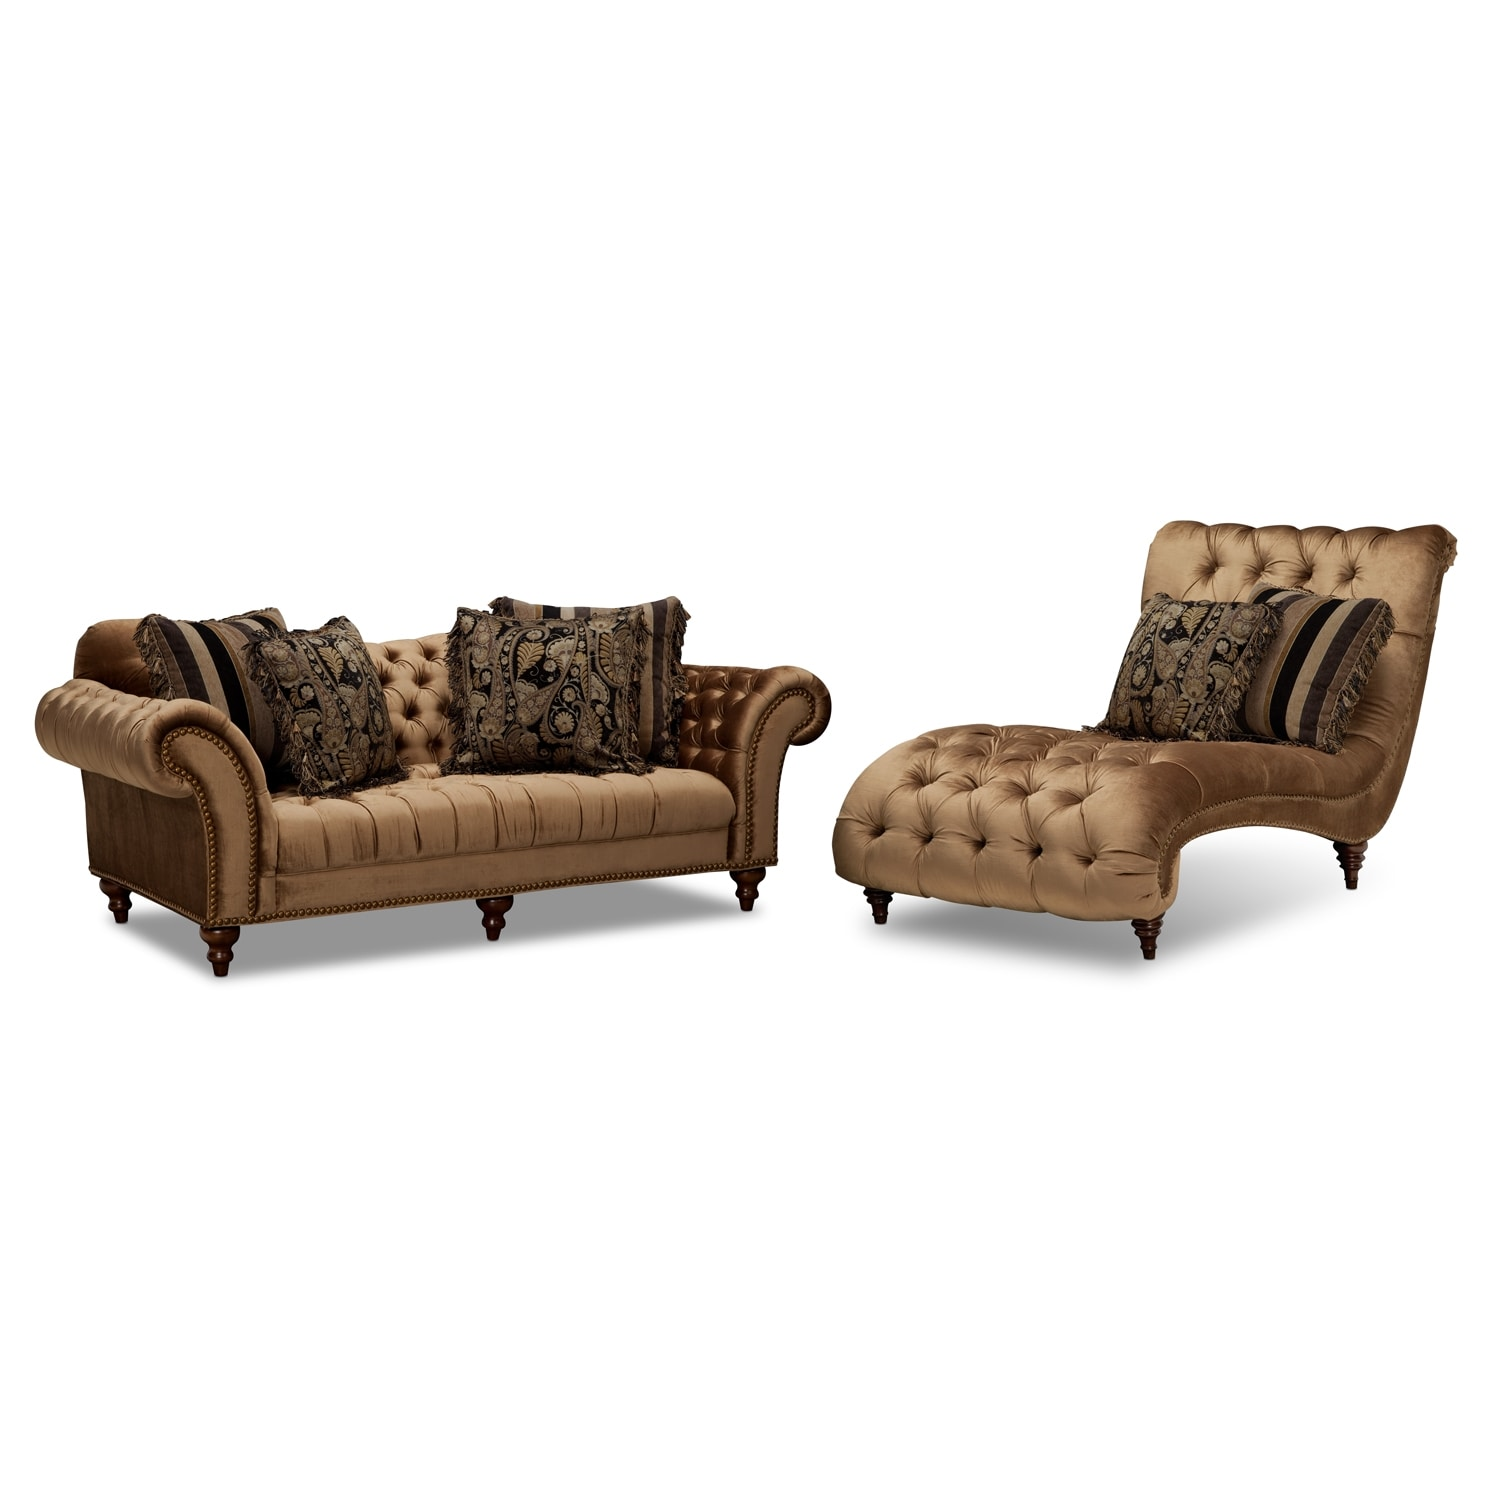 Brittney Sofa and Chaise Set - Bronze